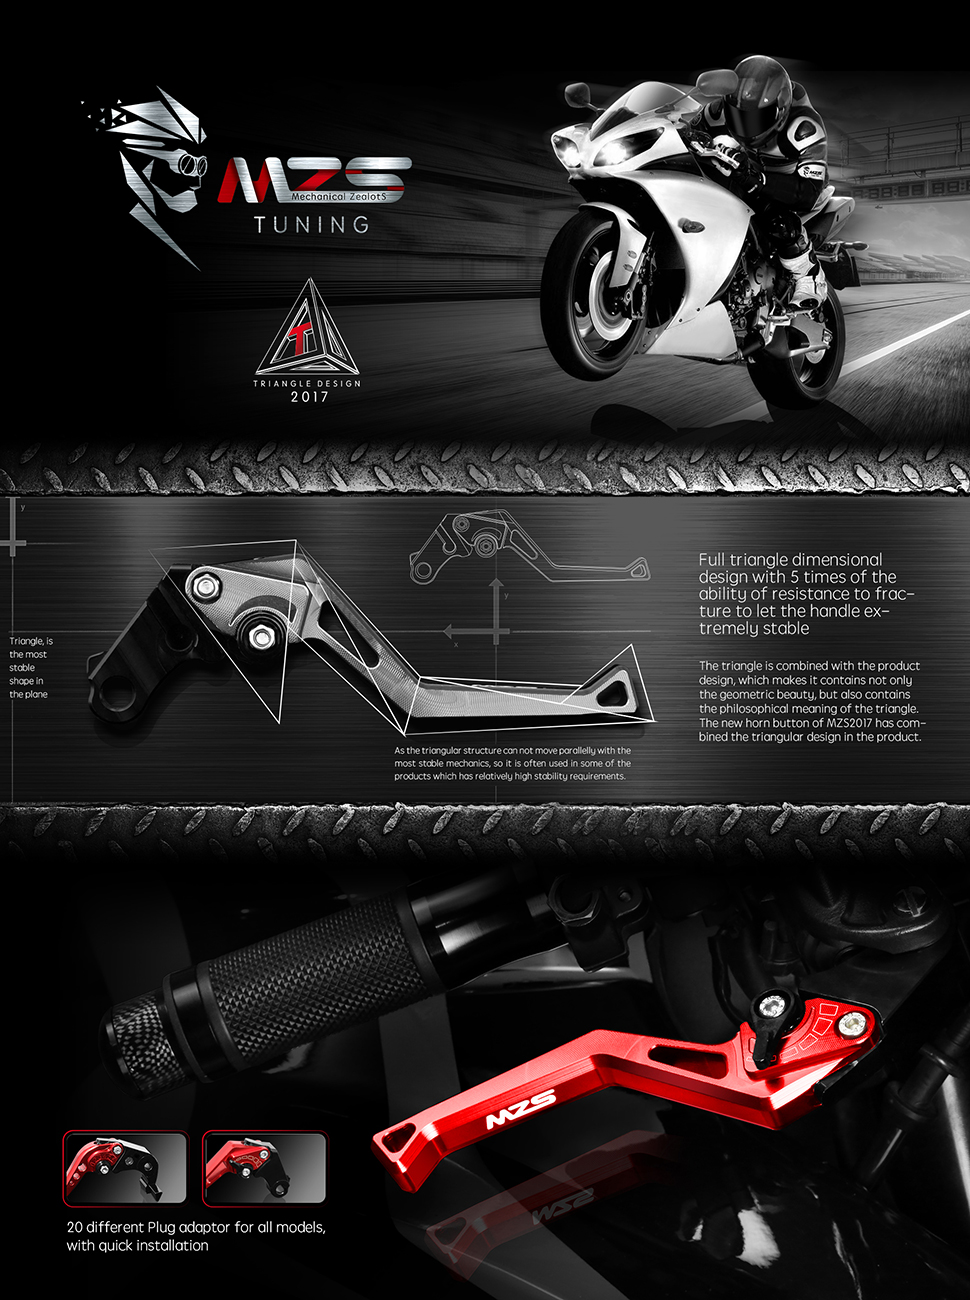 MZS CBR 600 Short Levers Brake Clutch CNC for Honda CBR600 F2 F3 F4 F4i/CB599/CB600/CB919/CBR900RR/VTX1300/CB750 91-08/Magna 750 94-04/Shadow 600 ...